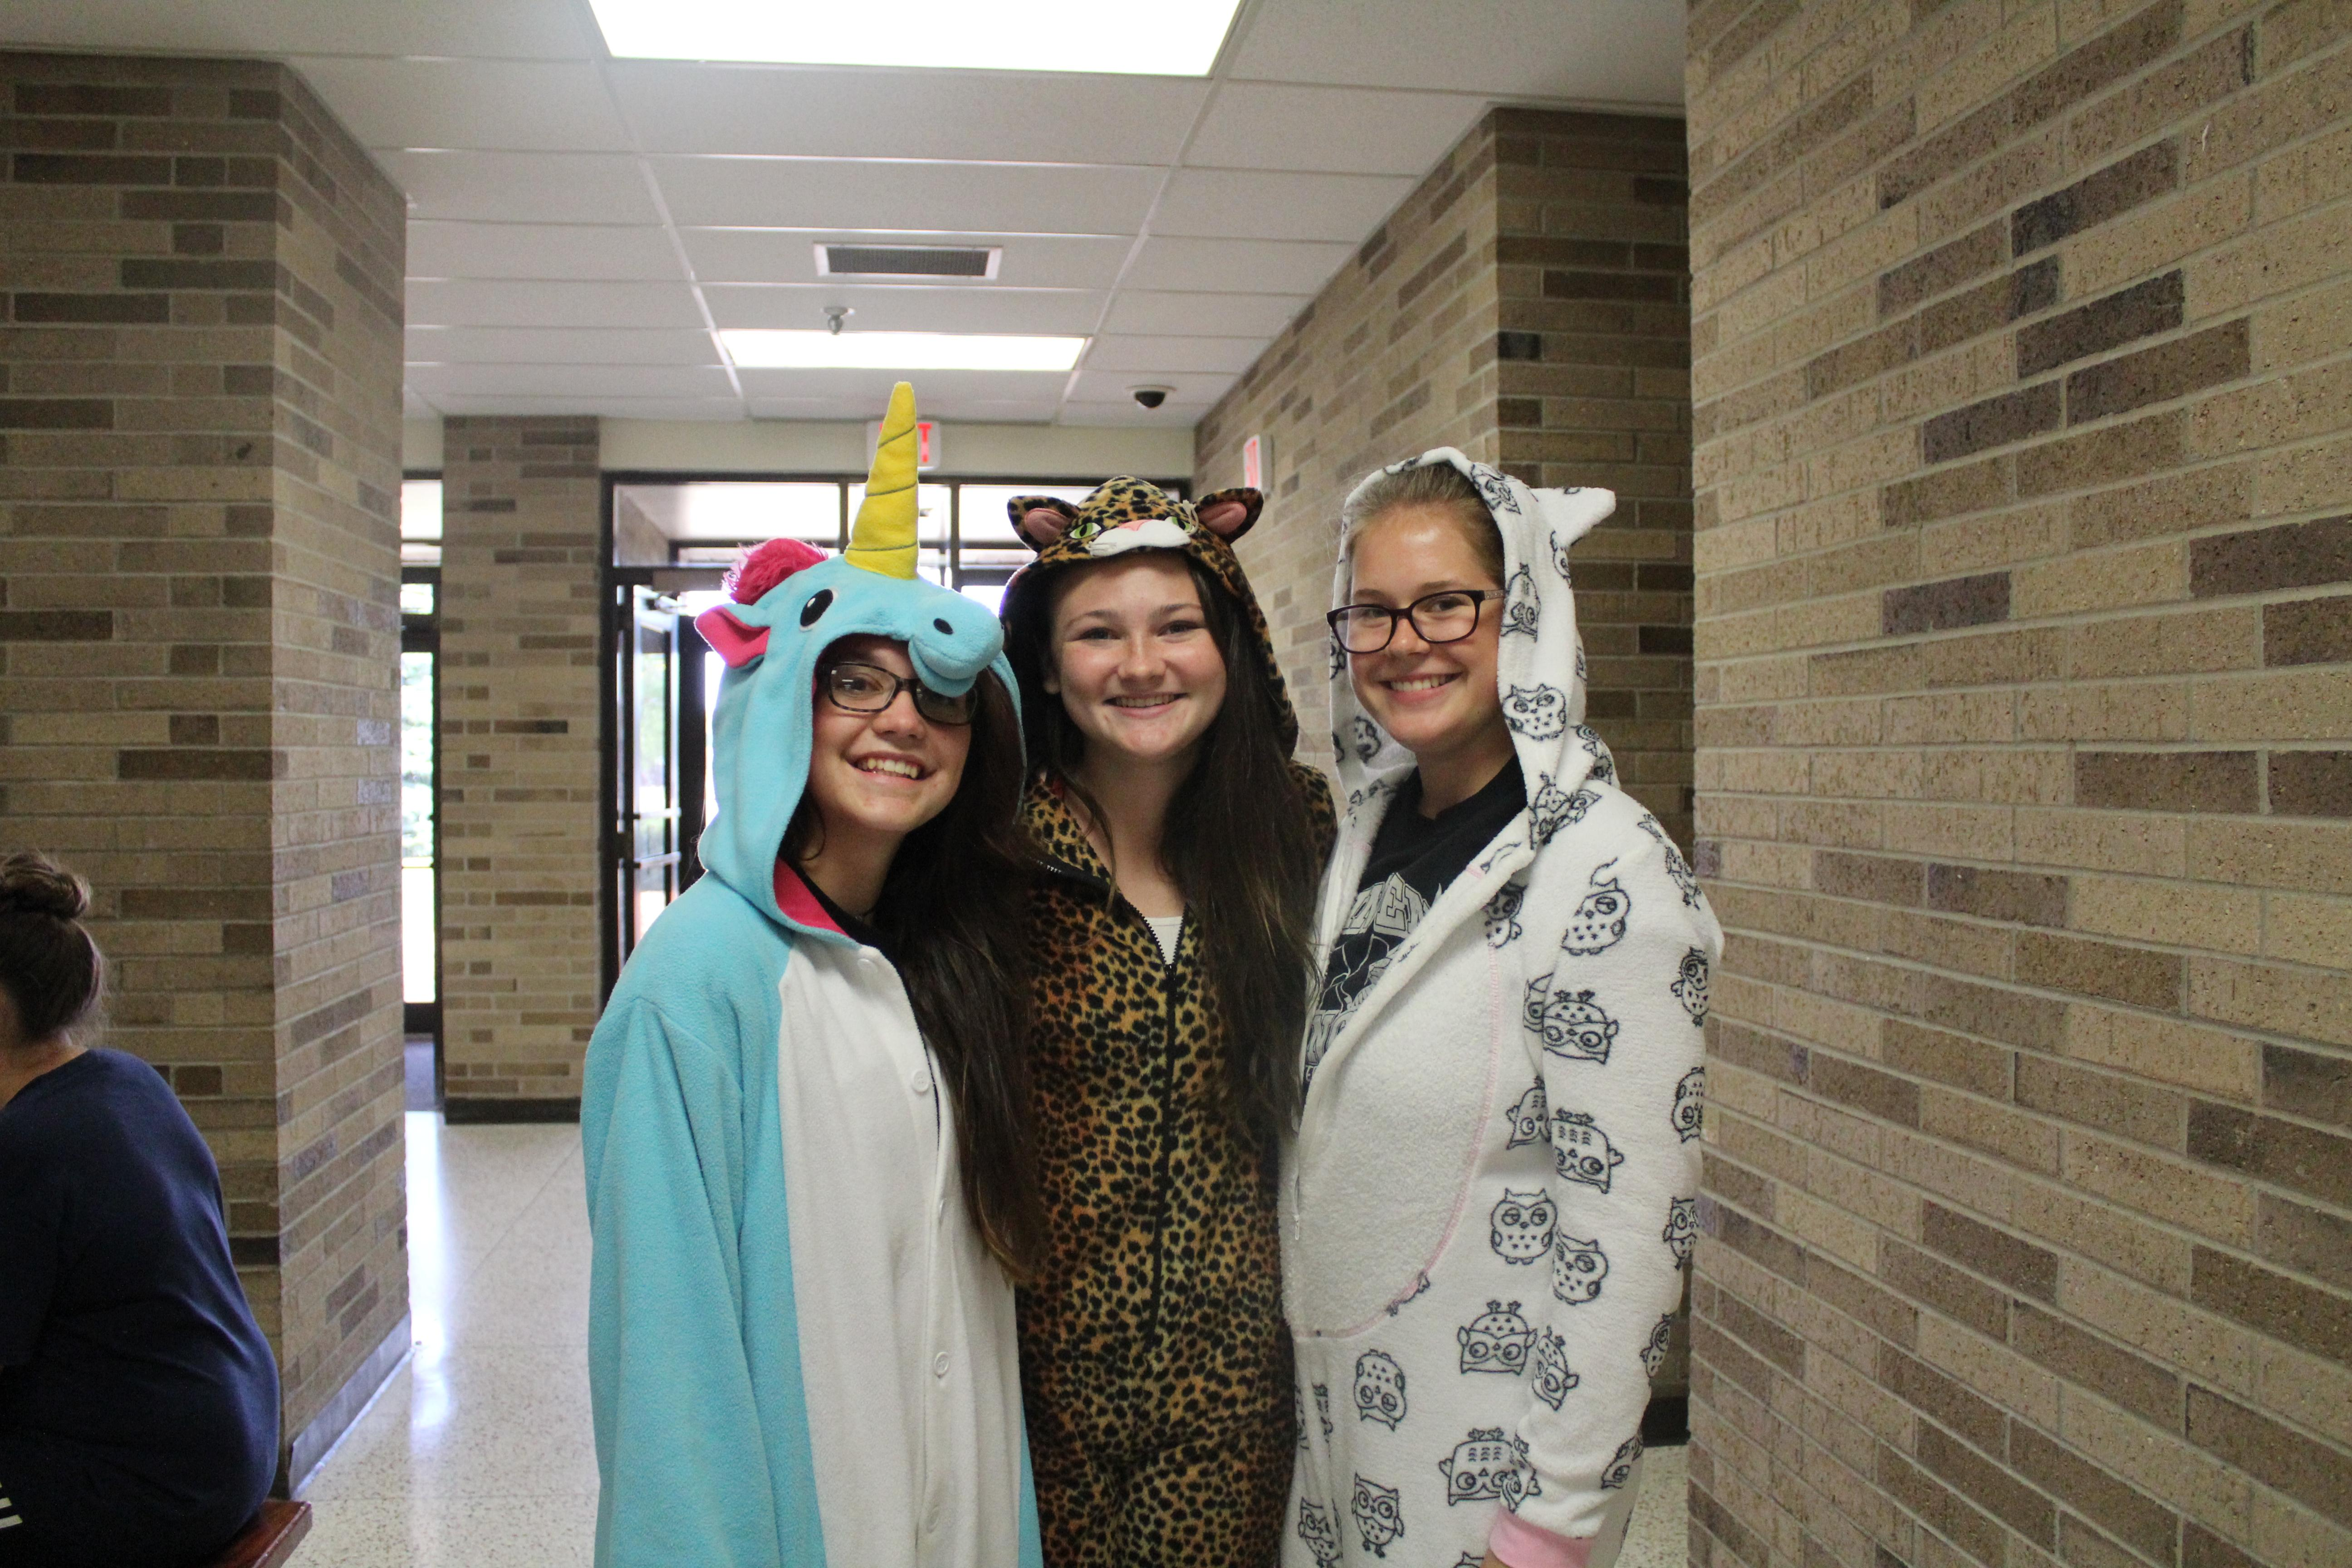 Three students in pajama costumes with hoods.